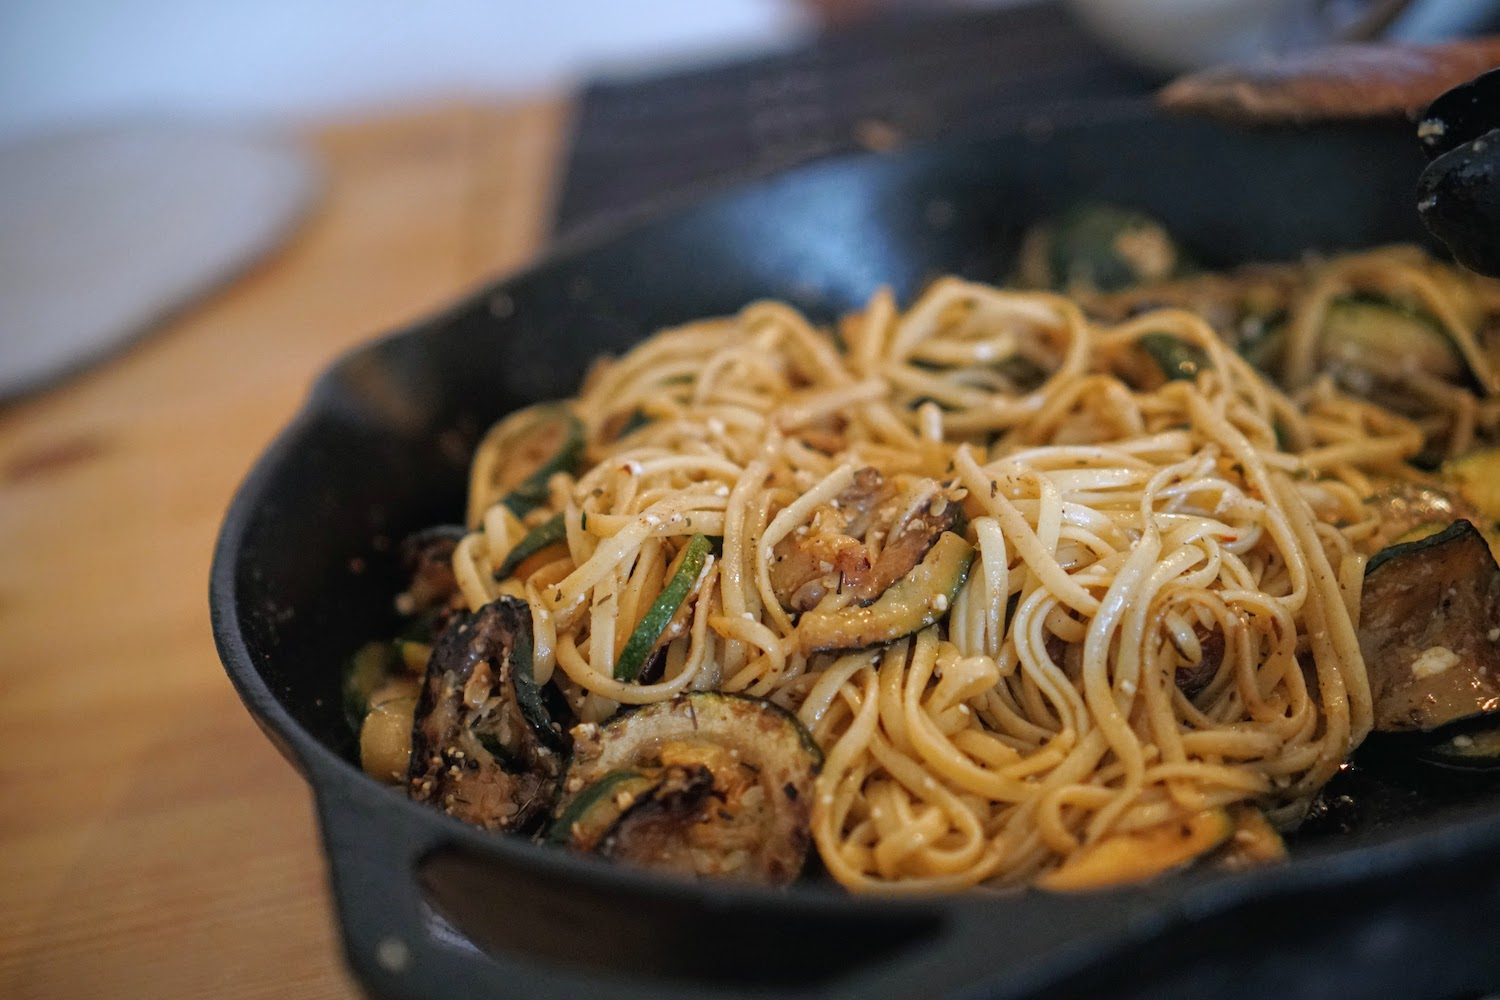 Linguine with zucchini in a cast iron pan